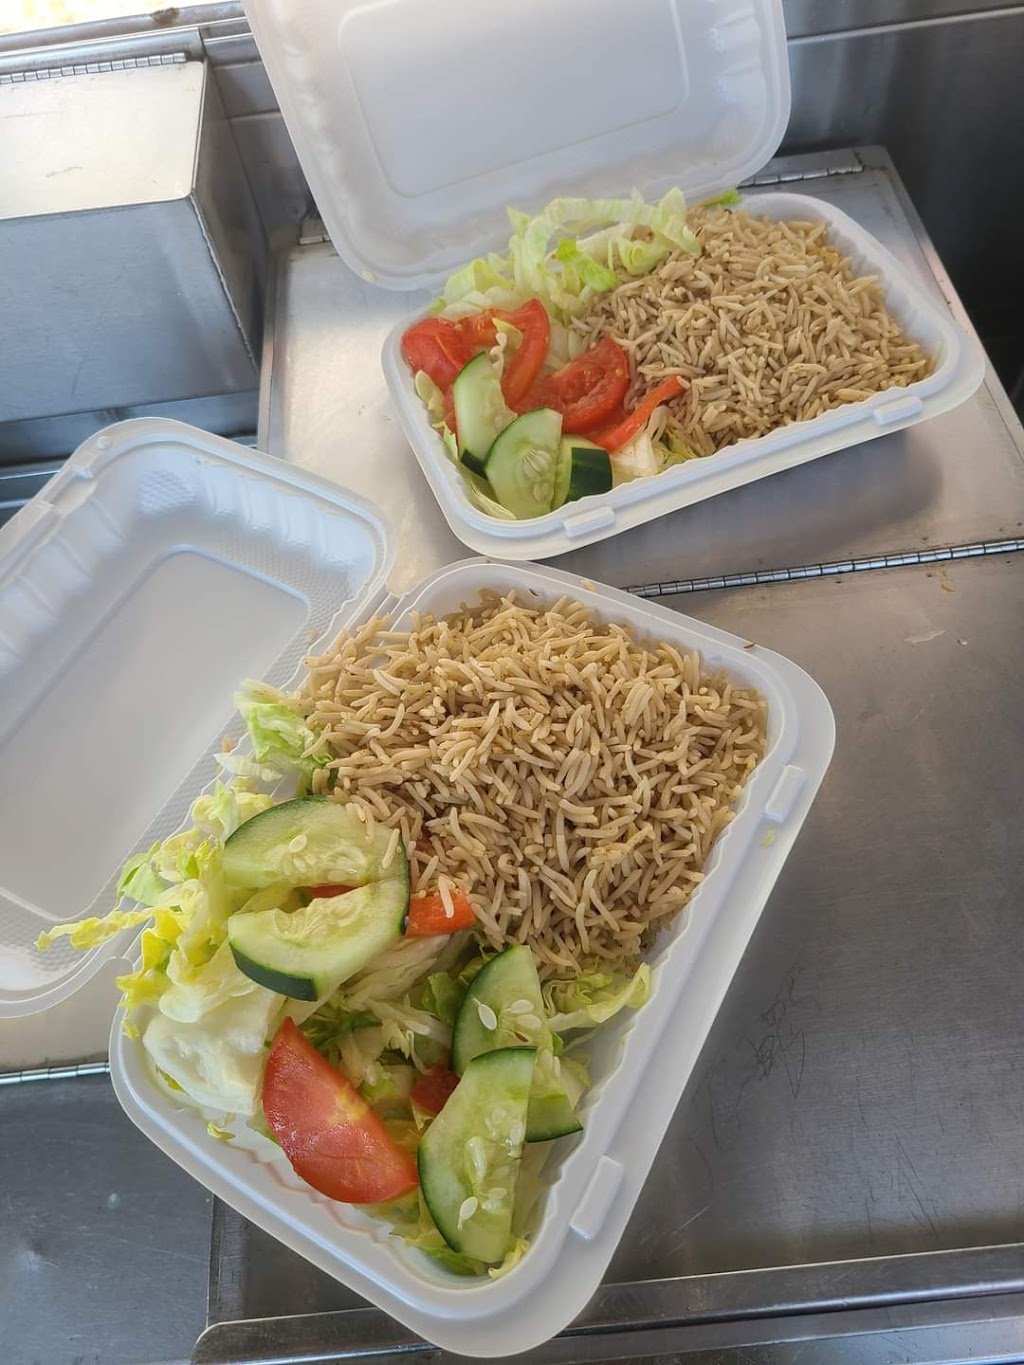 Annes halal food | meal takeaway | 254 05 Hillside Avenue, Queens, NY 11004, USA | 9294055940 OR +1 929-405-5940